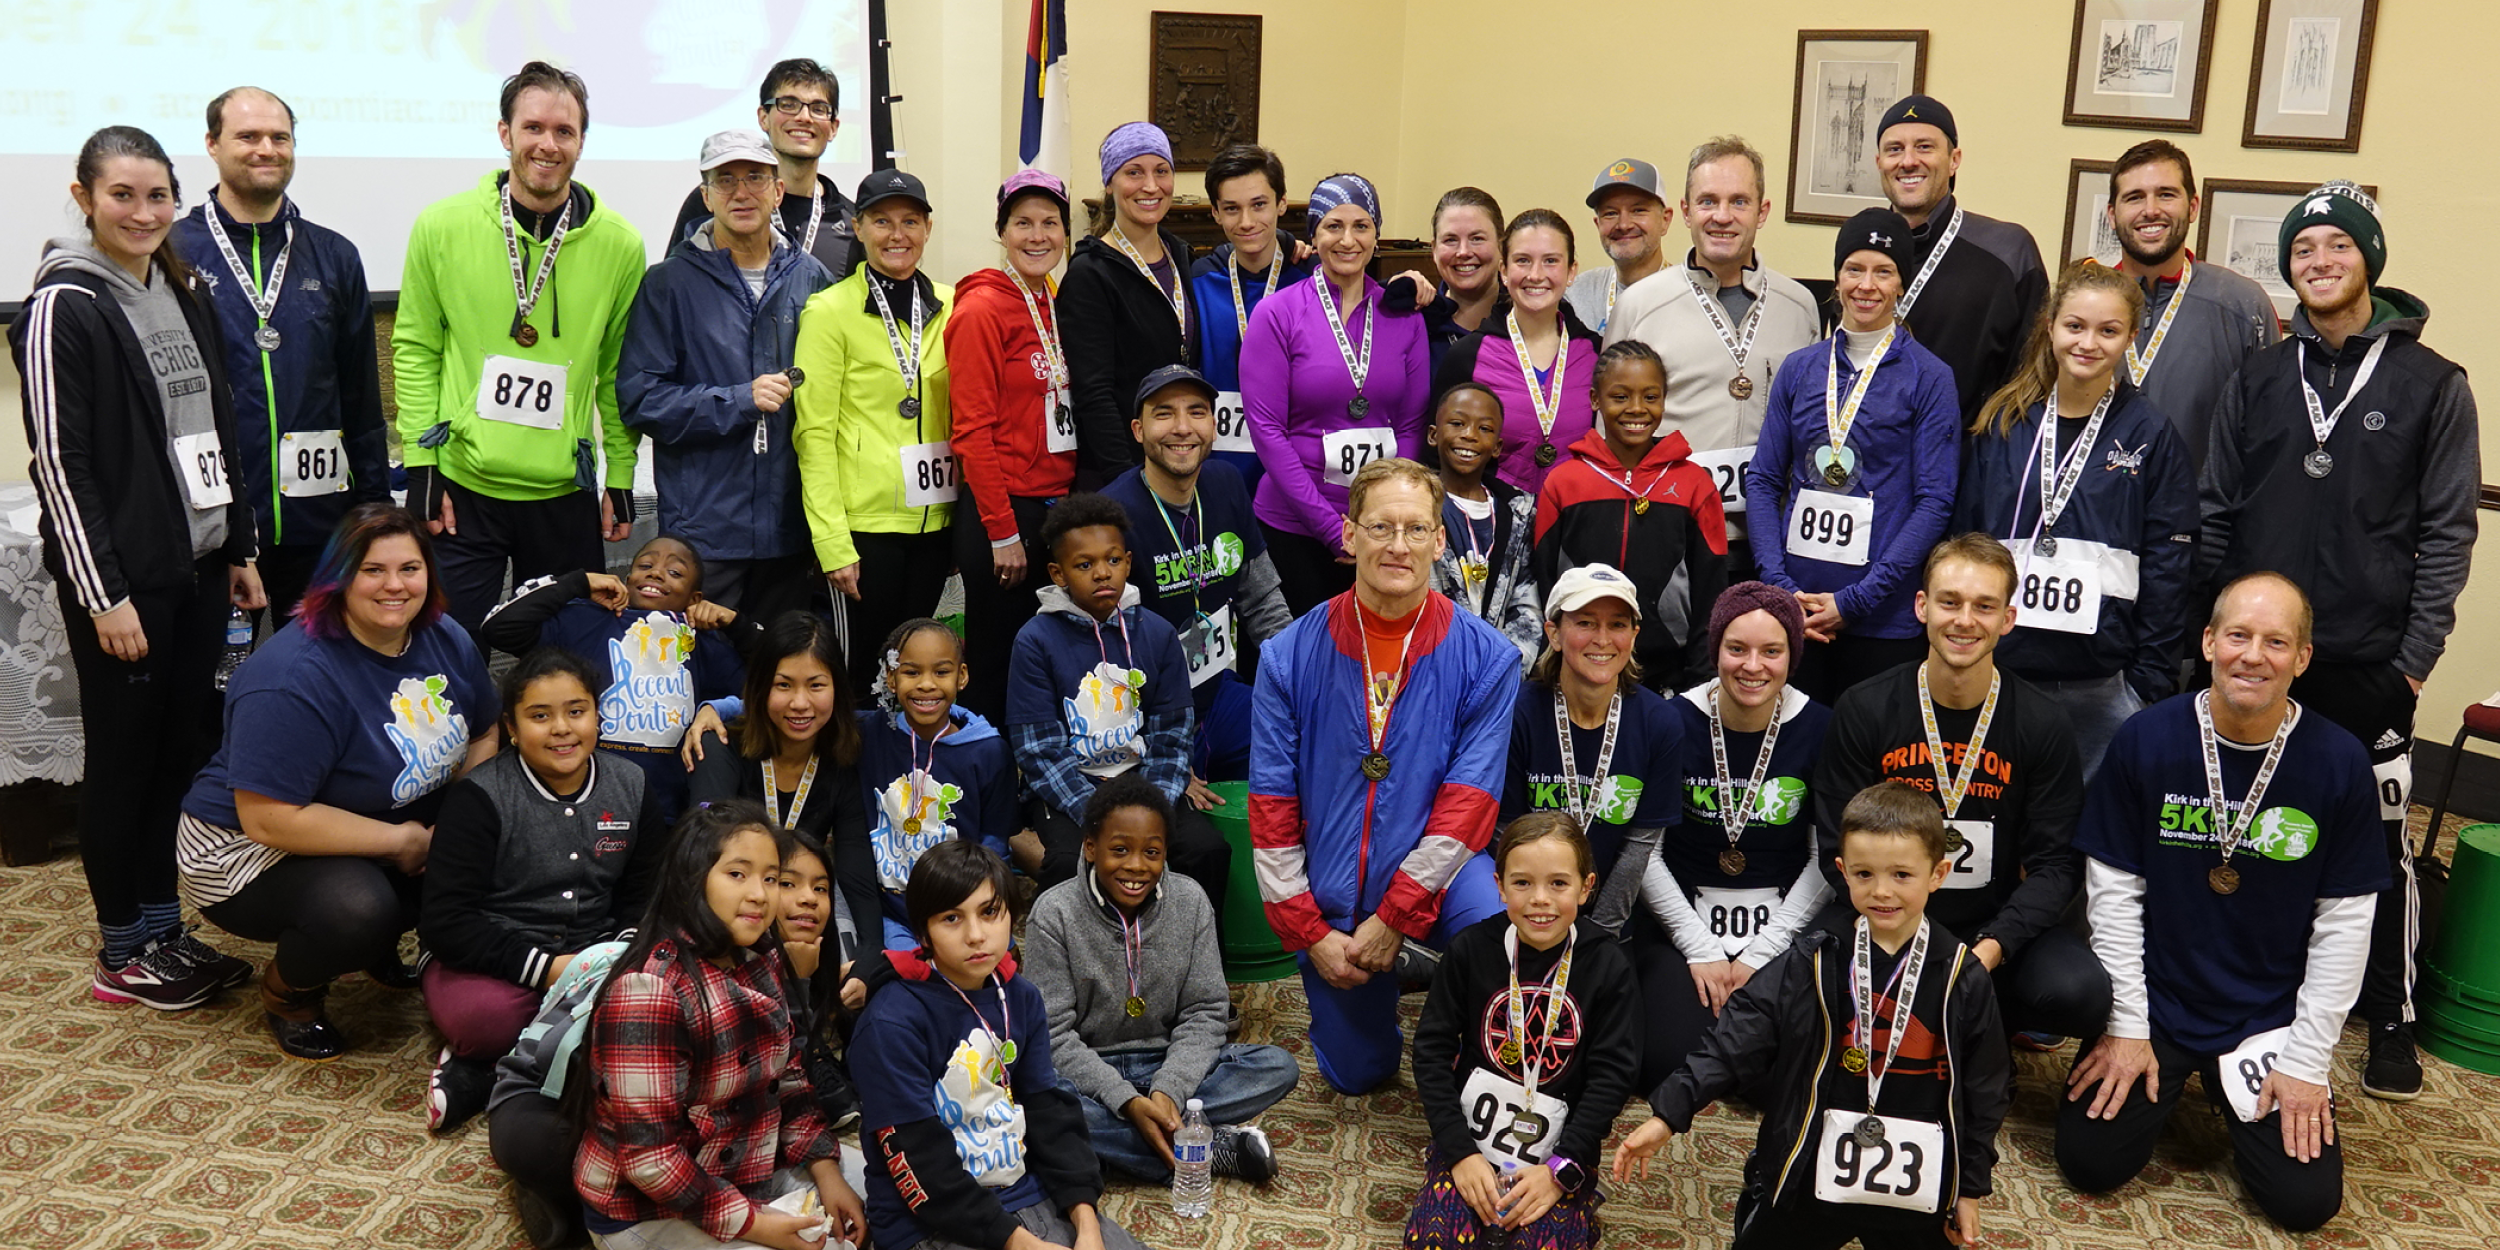 2018 group photo _ AP runners _ 600x300 px.png